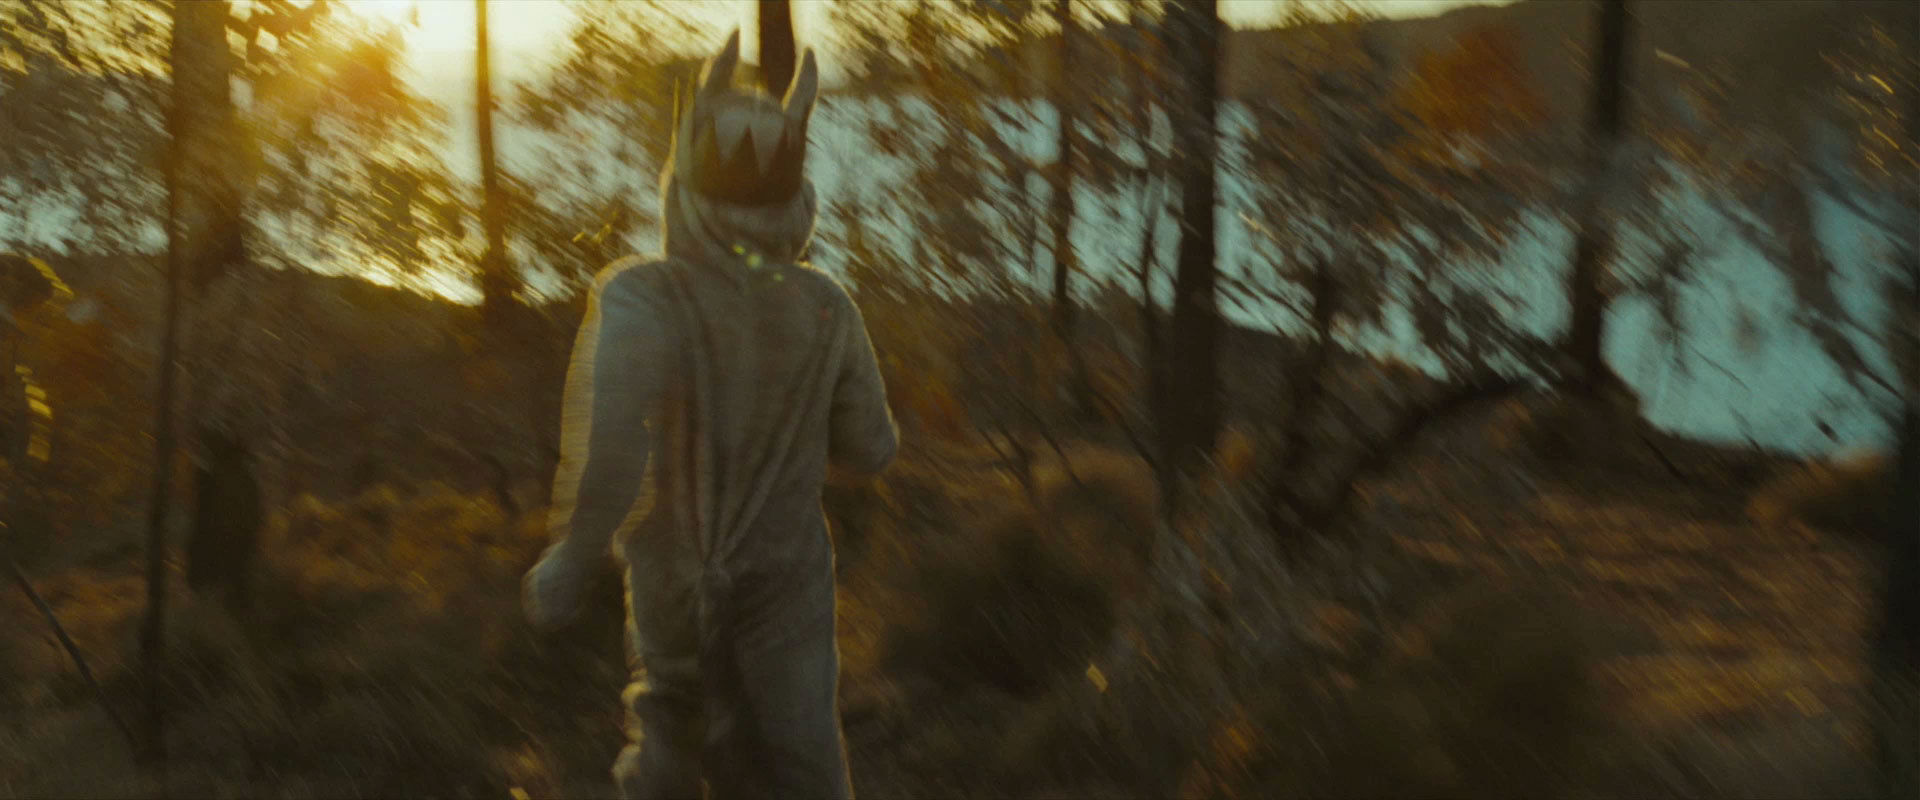 39 Where The Wild Things Are 39 Trailer Where The Wild Things Are Image 5219140 Fanpop